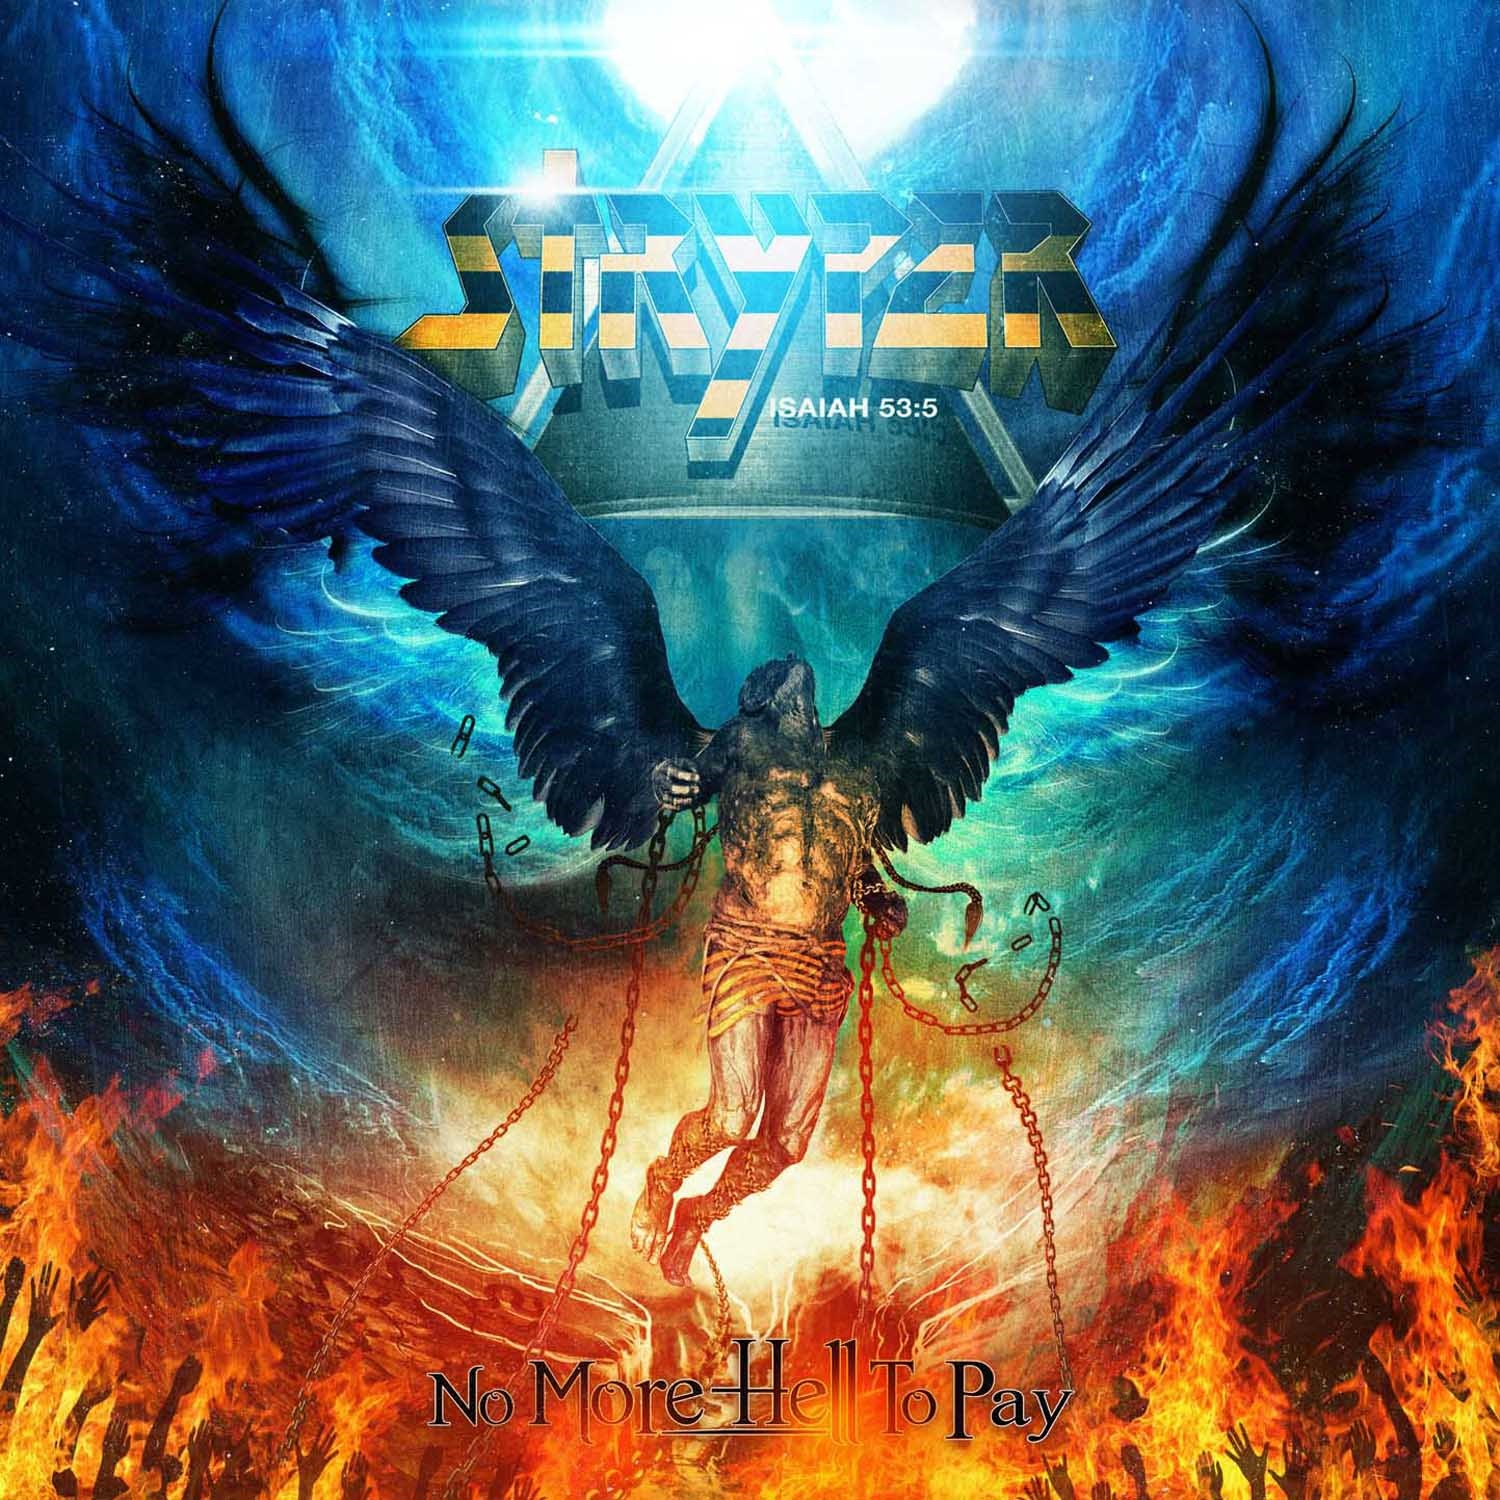 The covering by stryper on apple music.